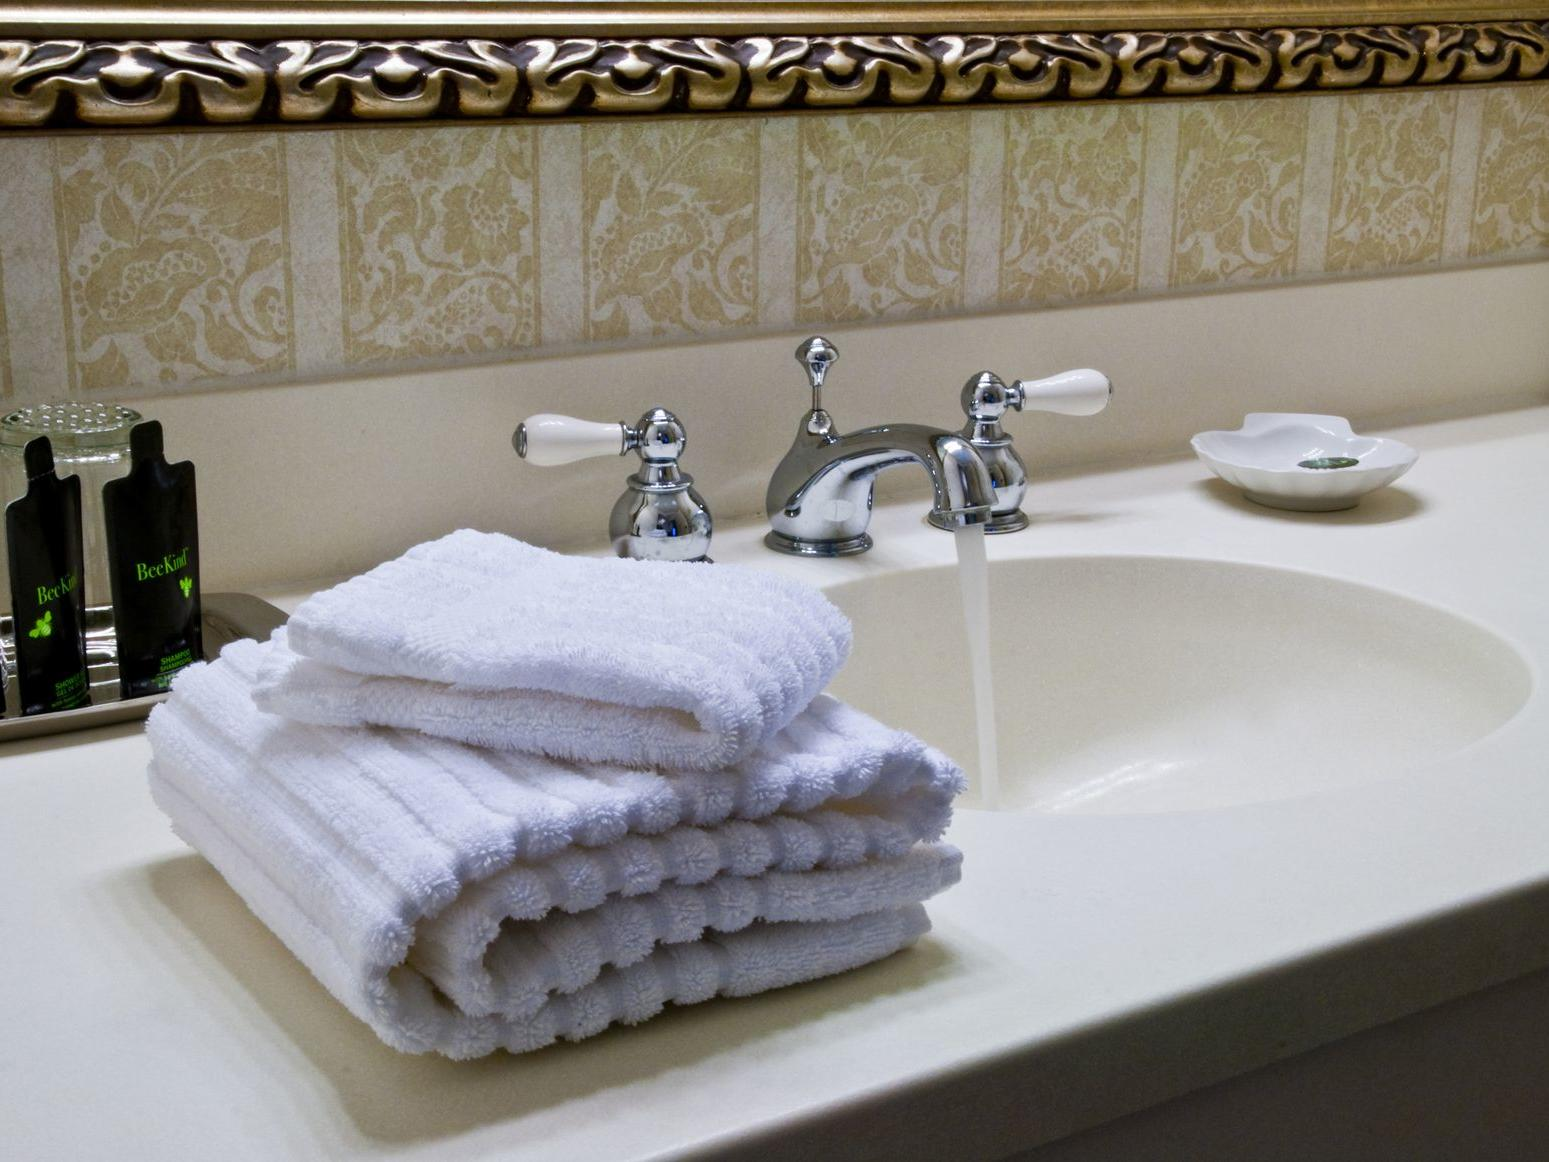 Folded towels and bath amenities next to bathroom sink